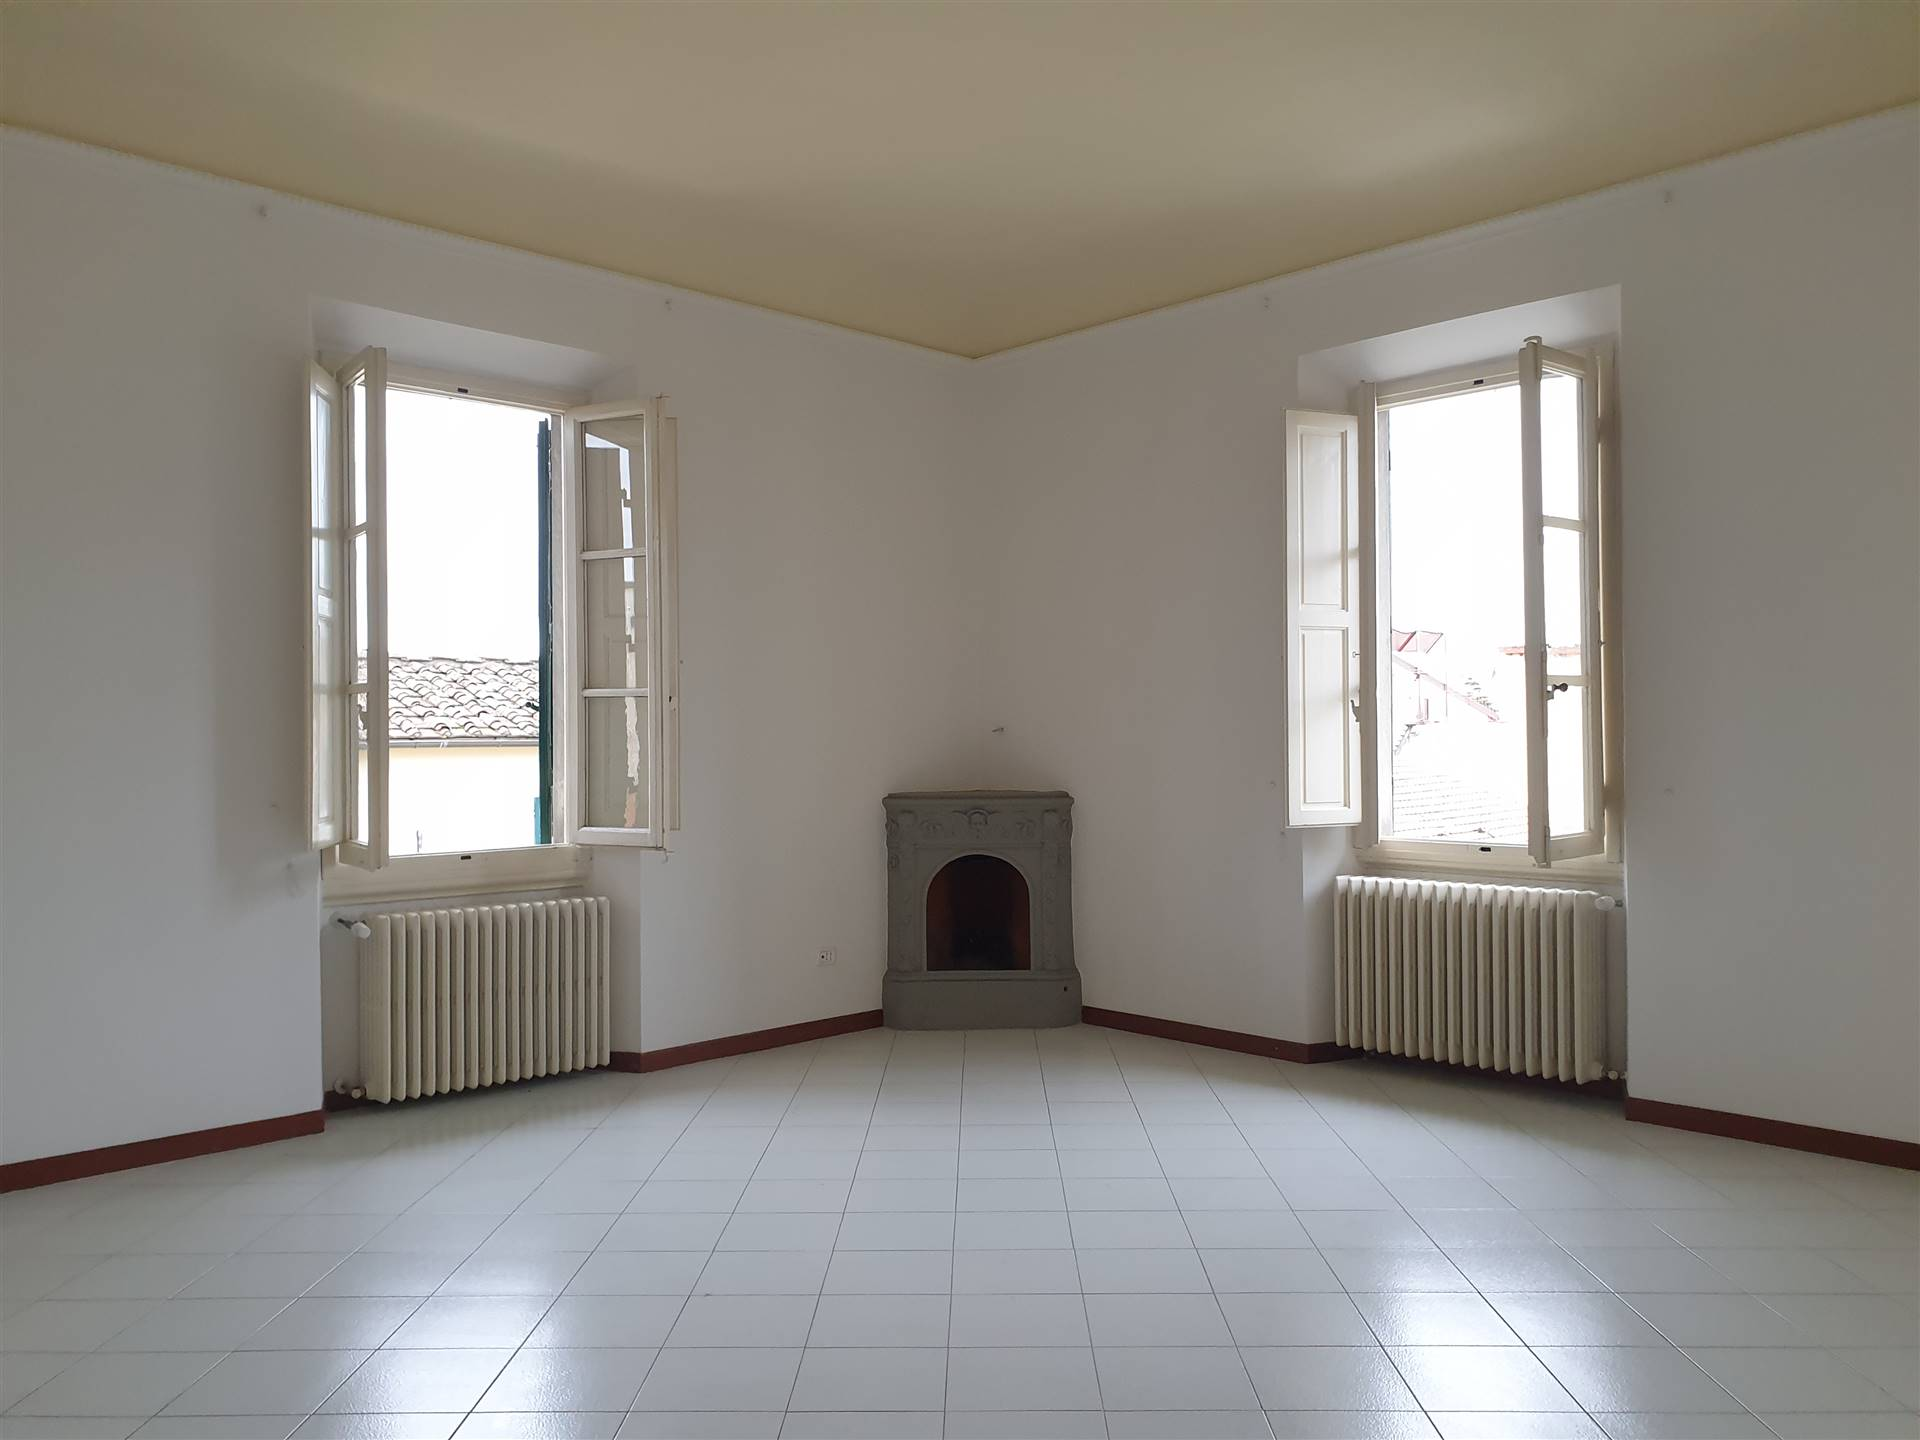 GRAMSCI, SESTO FIORENTINO, Office for rent of 105 Sq. mt., Restored, Heating Individual heating system, Energetic class: G, placed at Ground on 2,